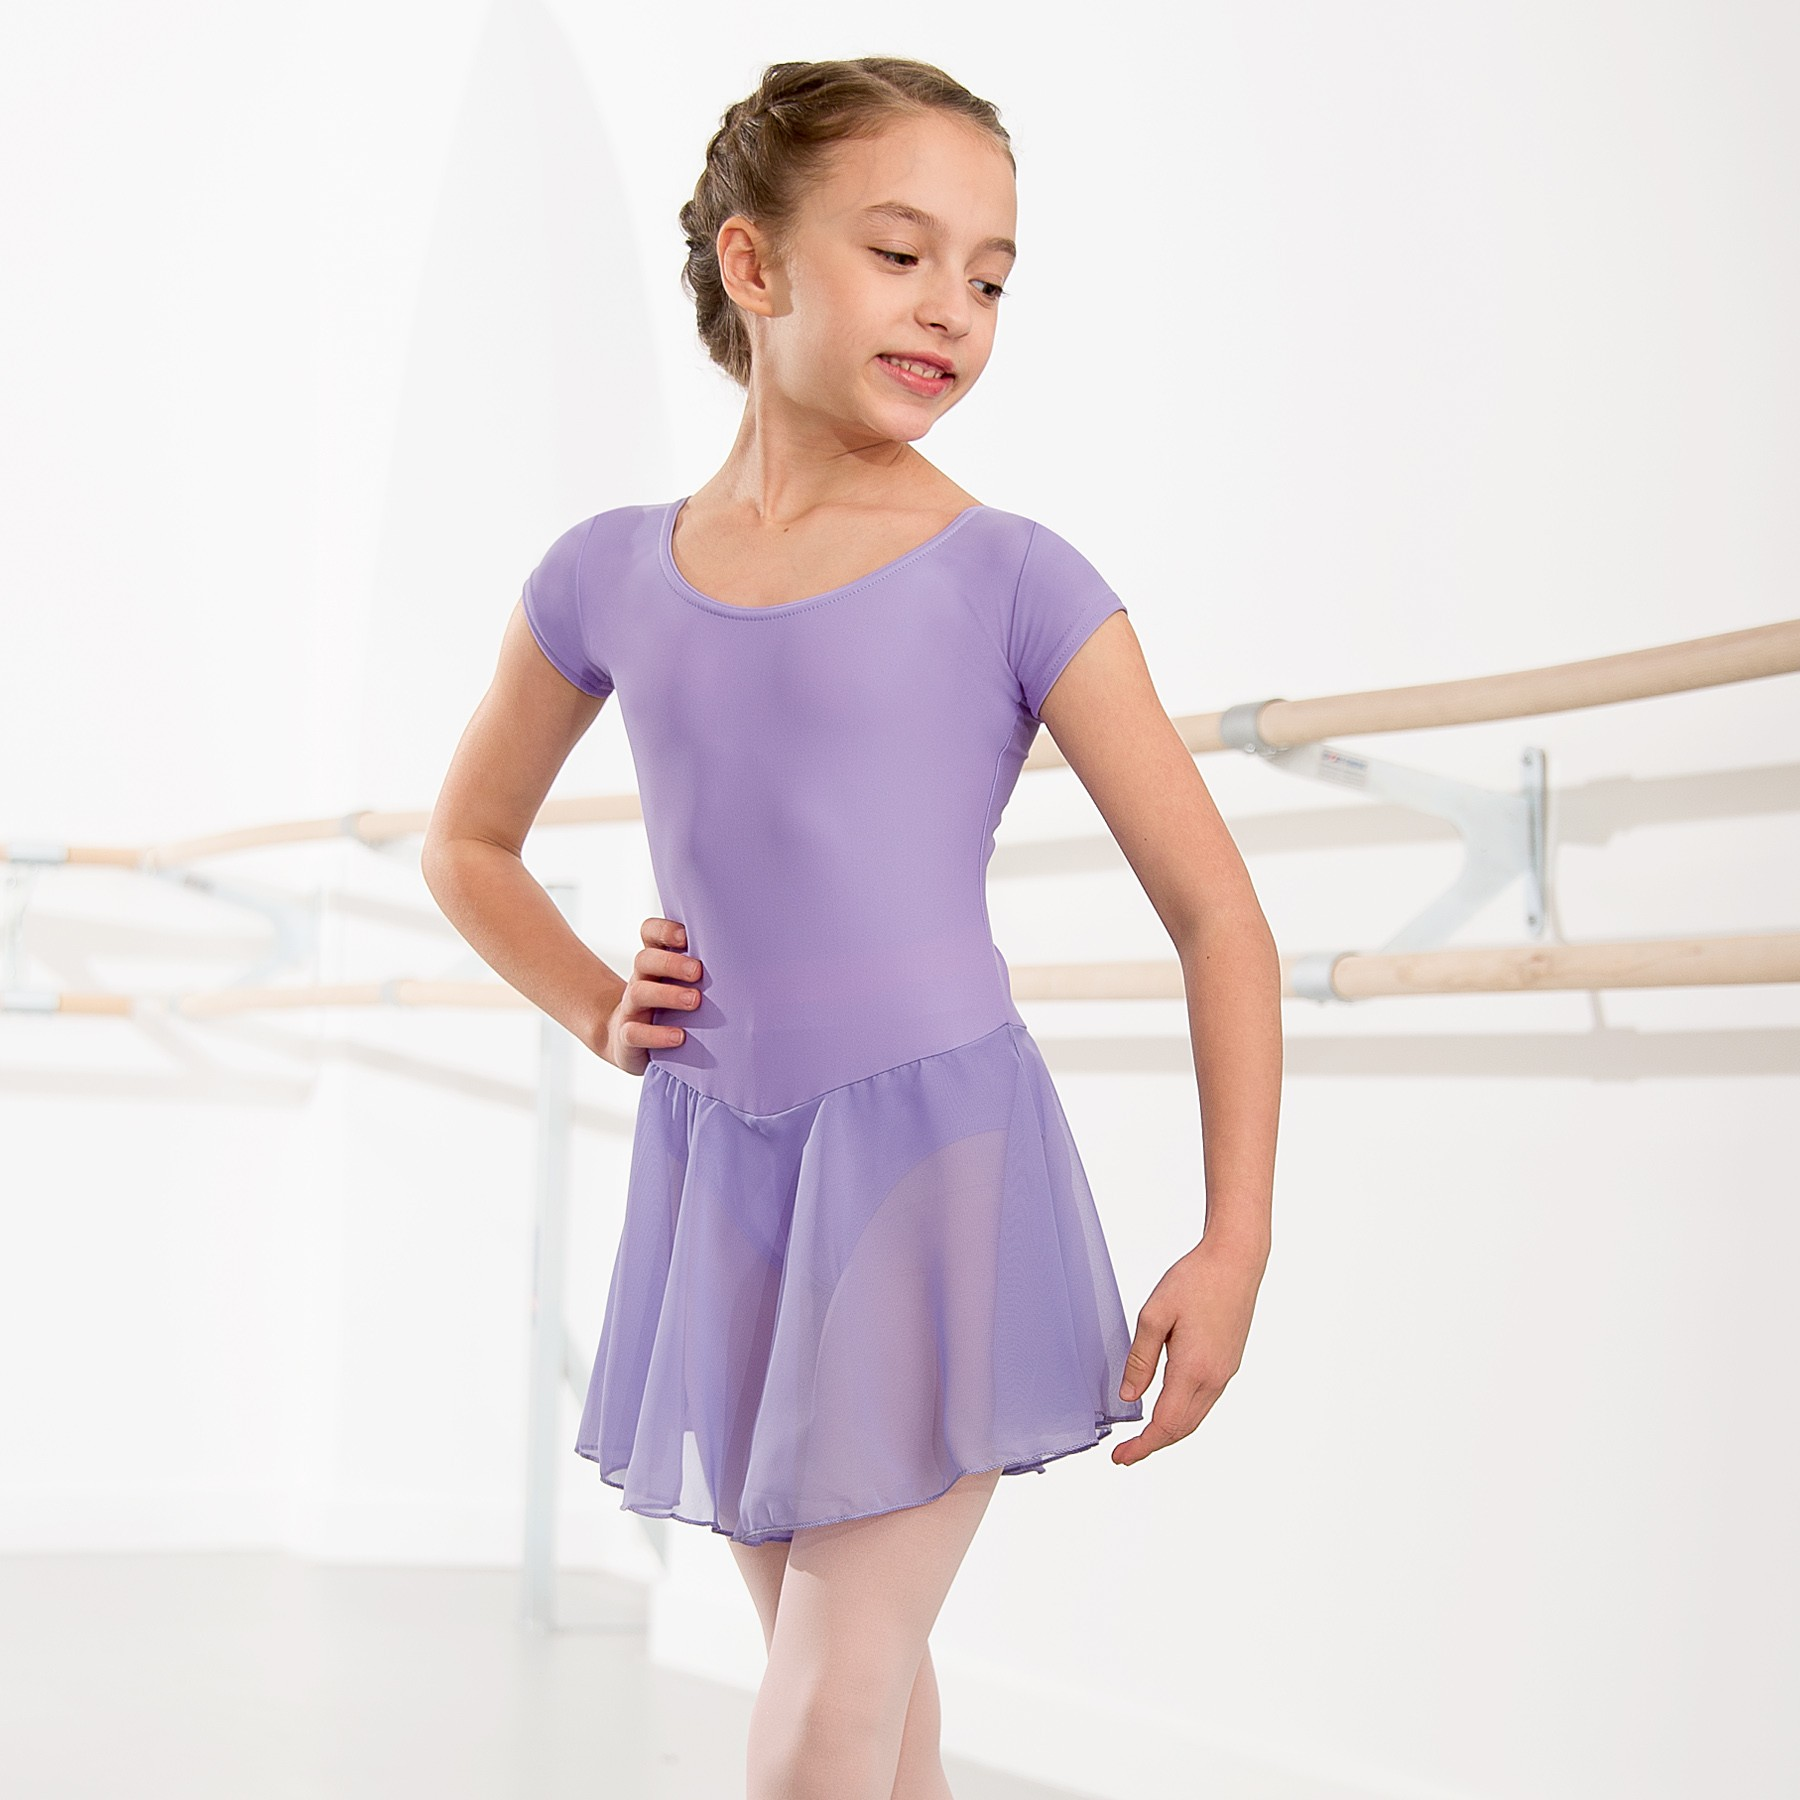 1st Position Milly Voile Skirted Cap Sleeve Leotard (Lilac)